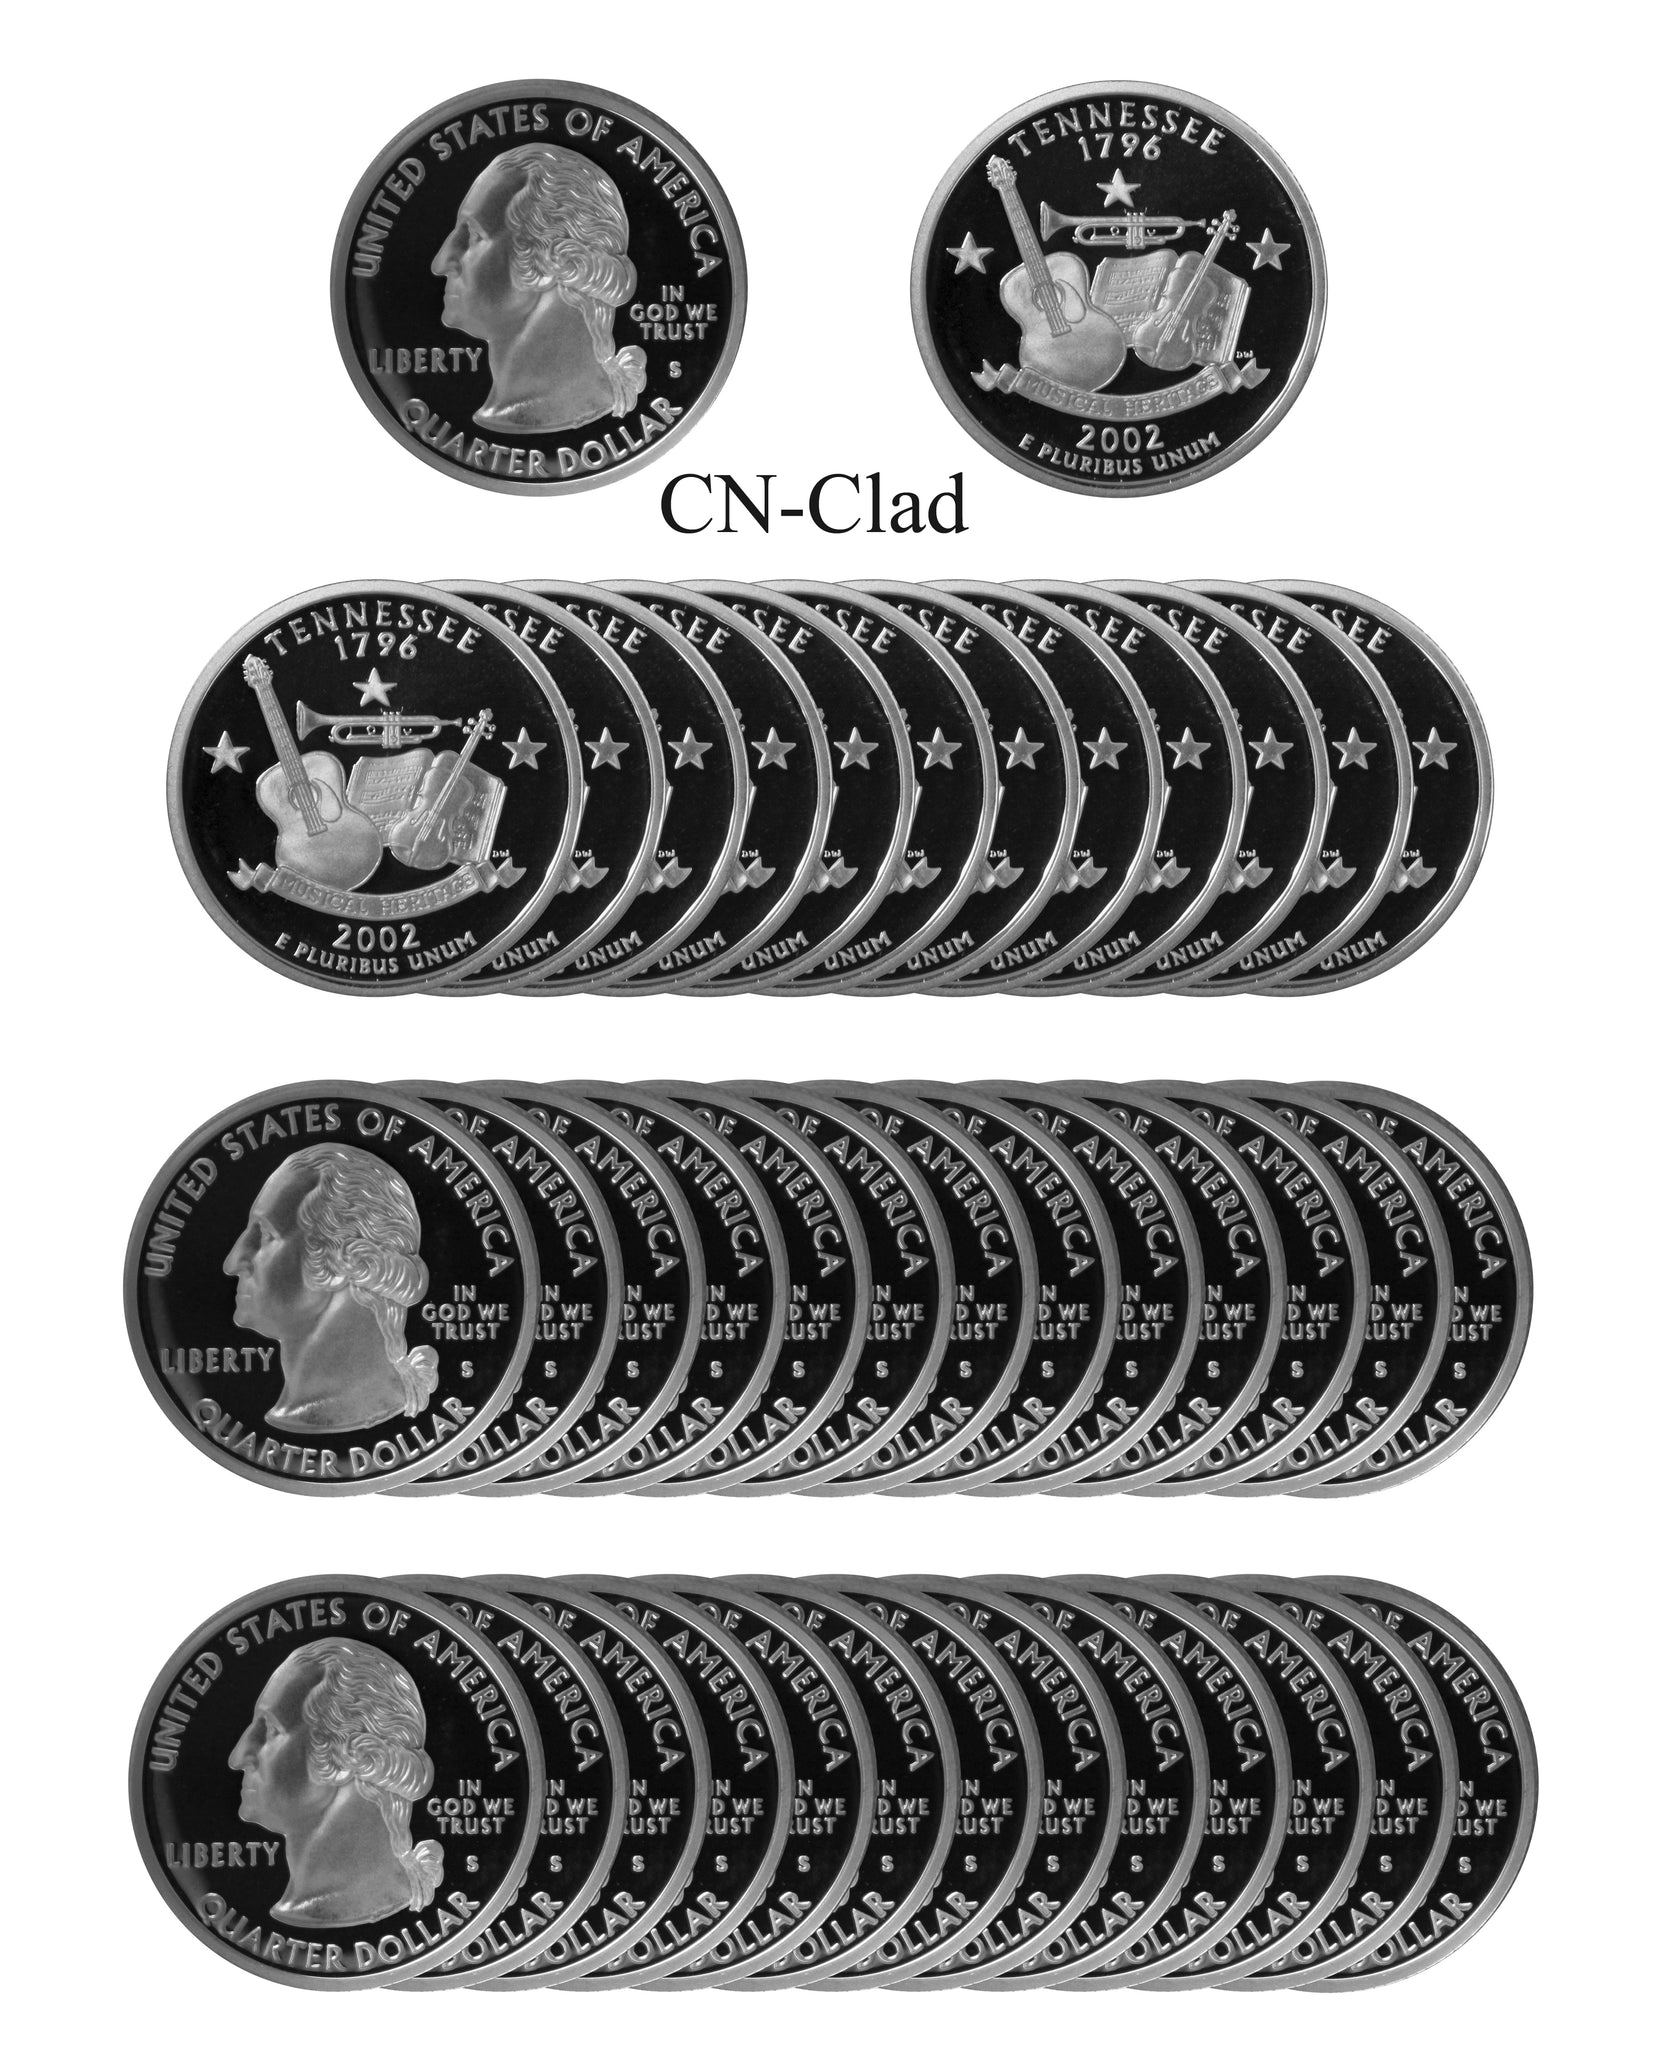 2002 S Tennessee State Quarter Proof Roll CN-Clad (40 Coins)